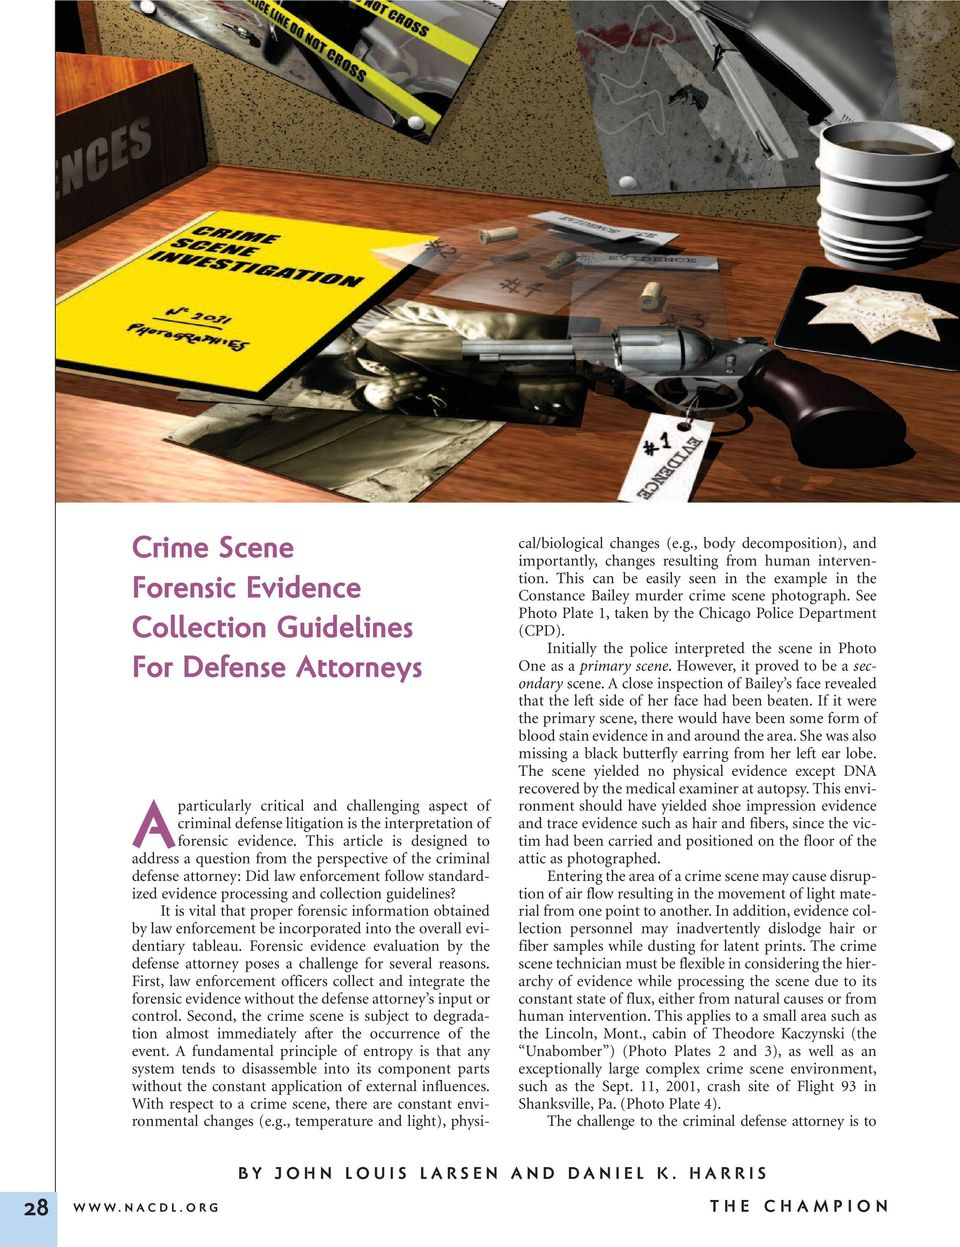 It is vital that proper forensic information obtained by law enforcement be incorporated into the overall evidentiary tableau.